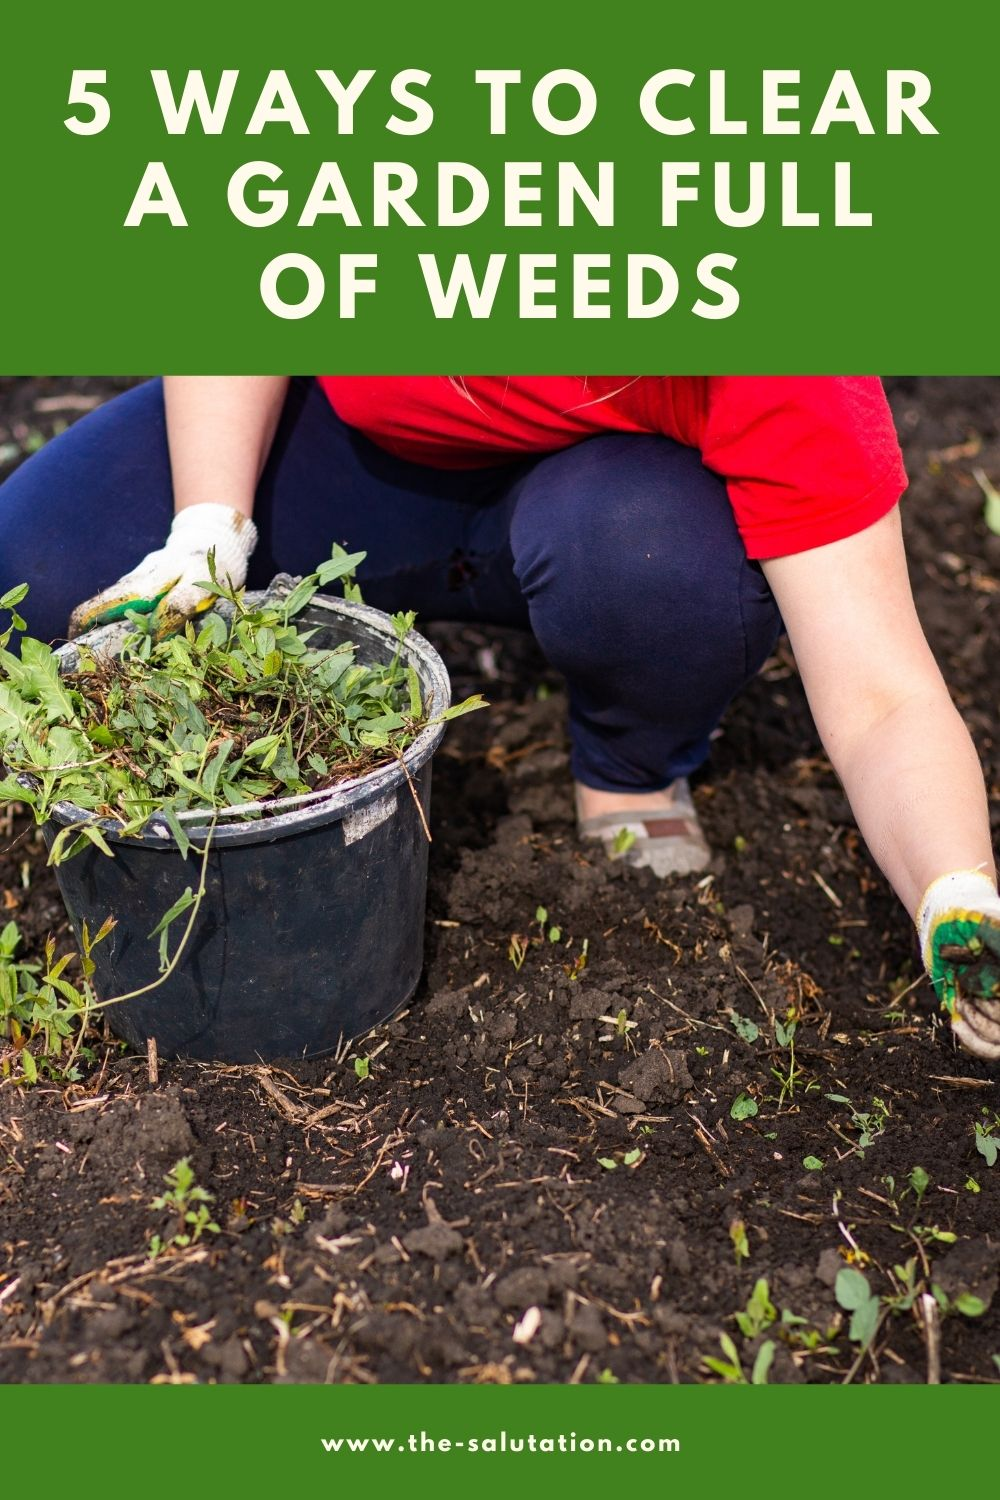 5 Ways to Clear a Garden Full of Weeds